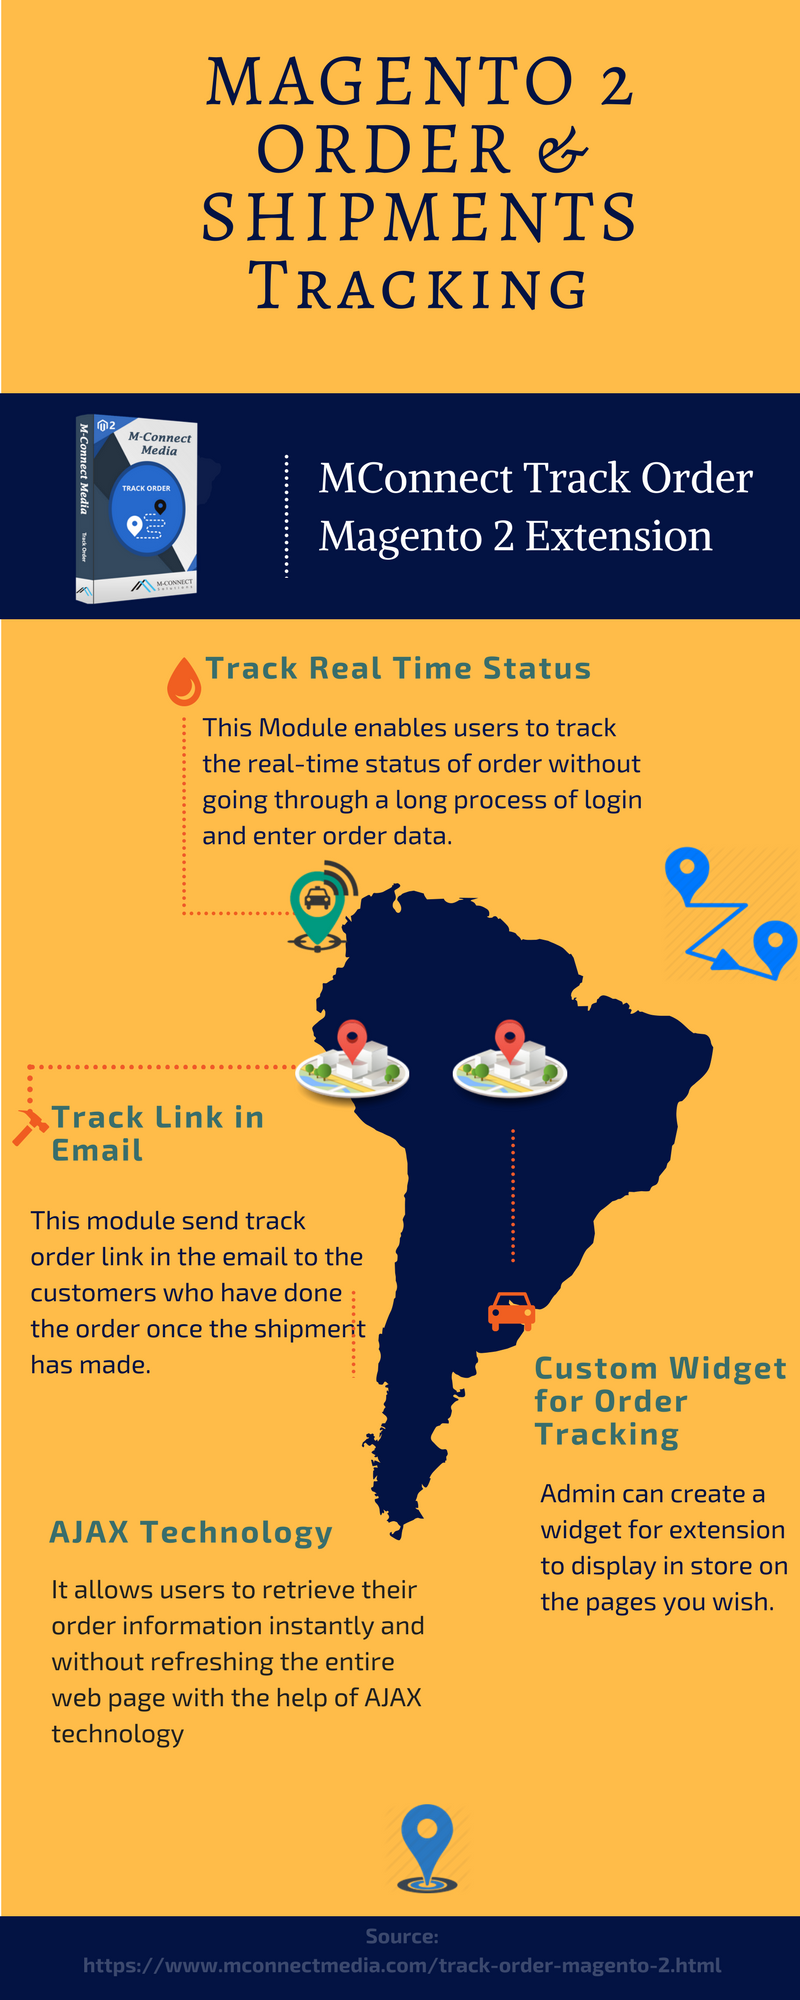 How to Track Order Status and Shipment in Magento 2?